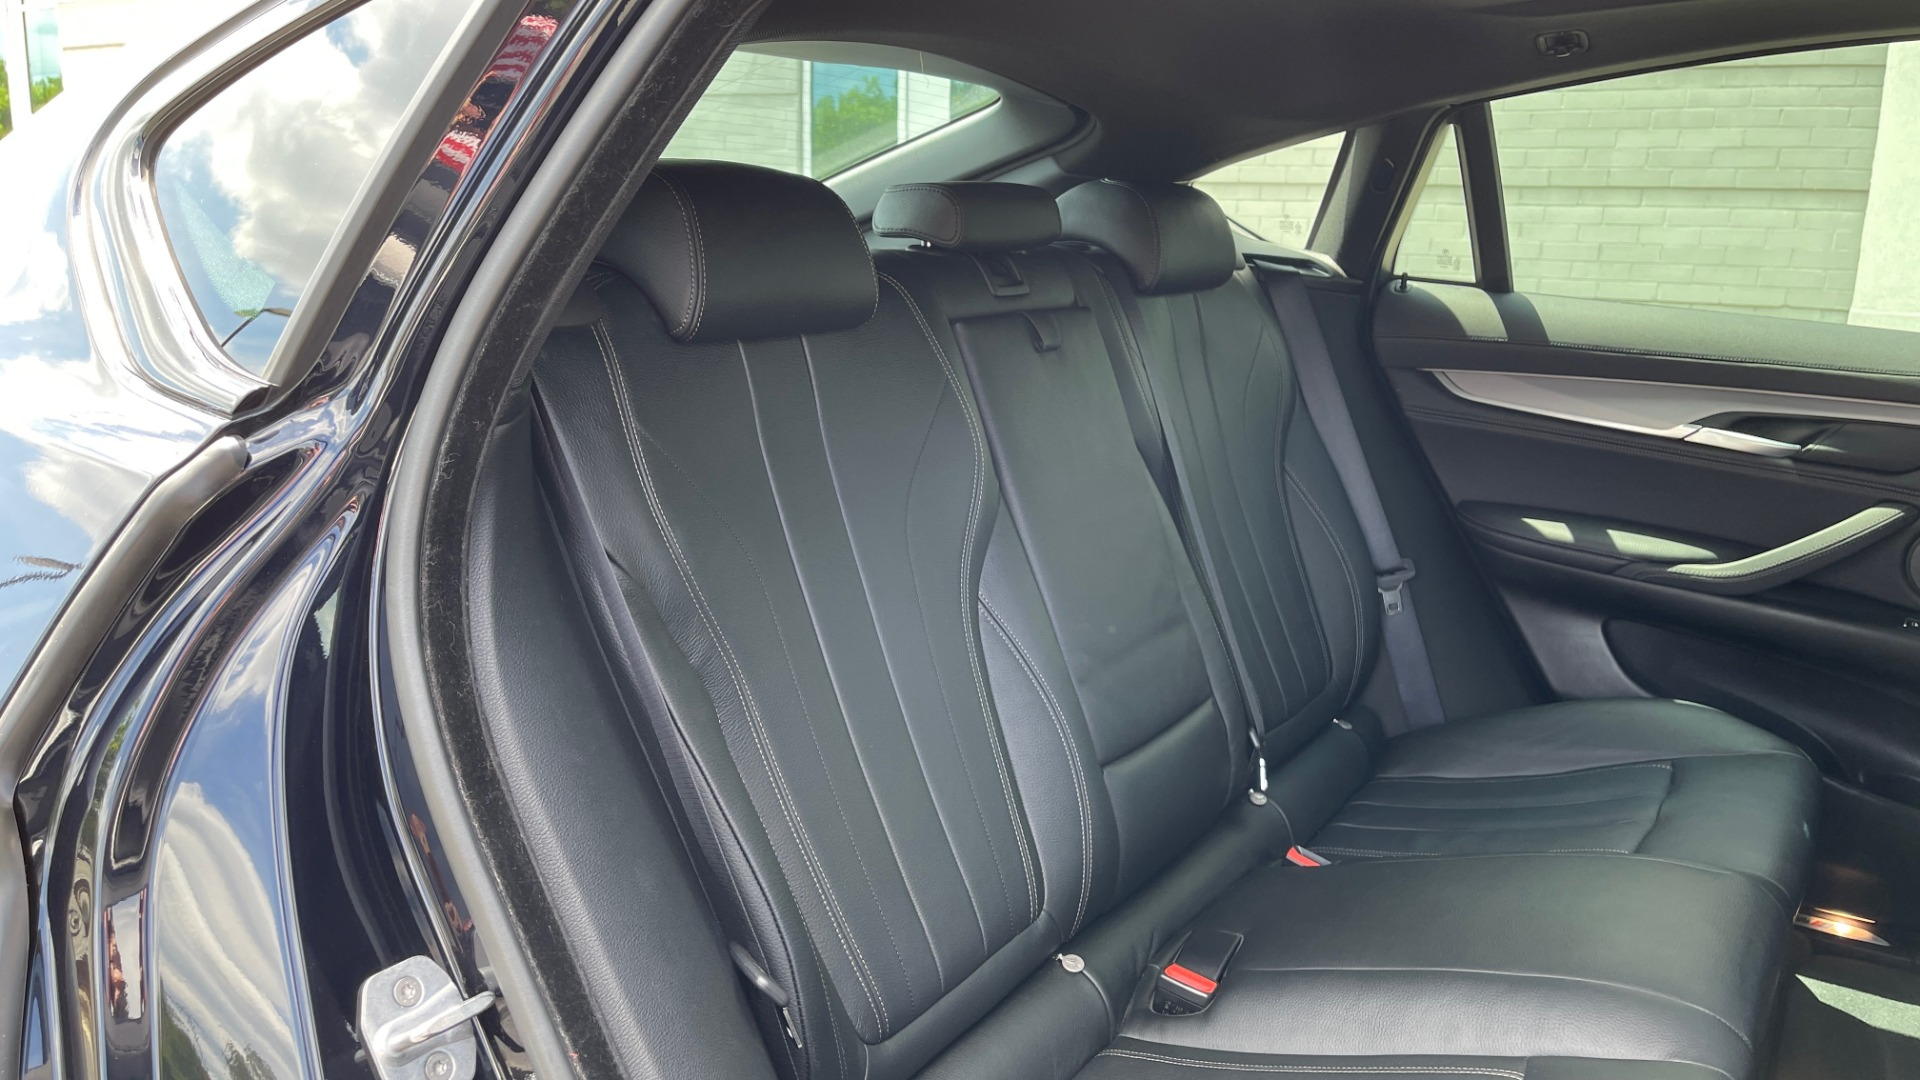 Used 2018 BMW X6 XDRIVE35I M-SPORT / DRVR ASST / PRK ASST / H/K SND / APPLE / WIRELESS CHARG for sale $51,995 at Formula Imports in Charlotte NC 28227 62